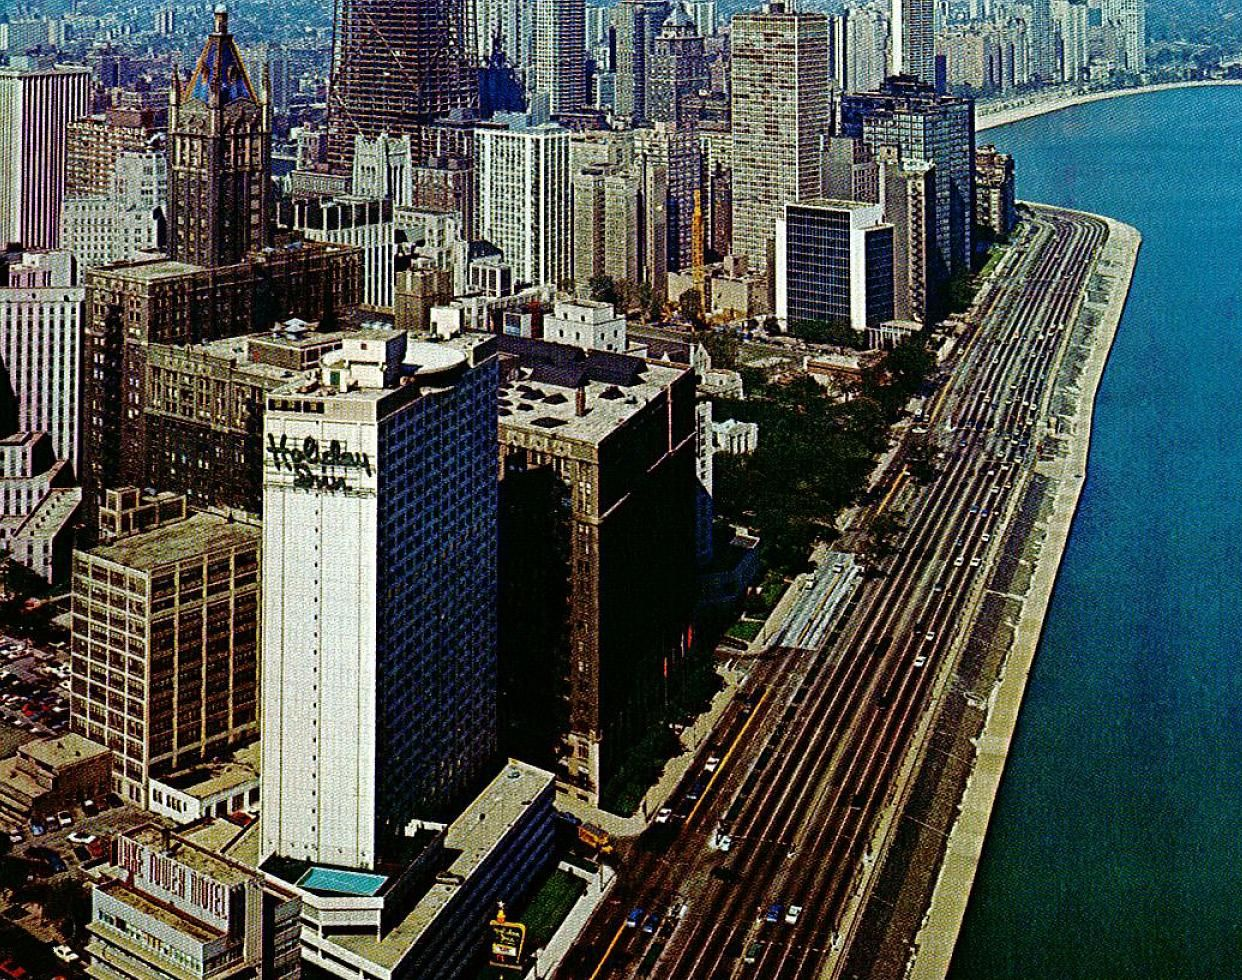 Late View Of The Holiday Inn Lake Shore Drive In Downtown Chicago. The  Blue Peaked Building In Back Of It Is The American Furniture Mart.